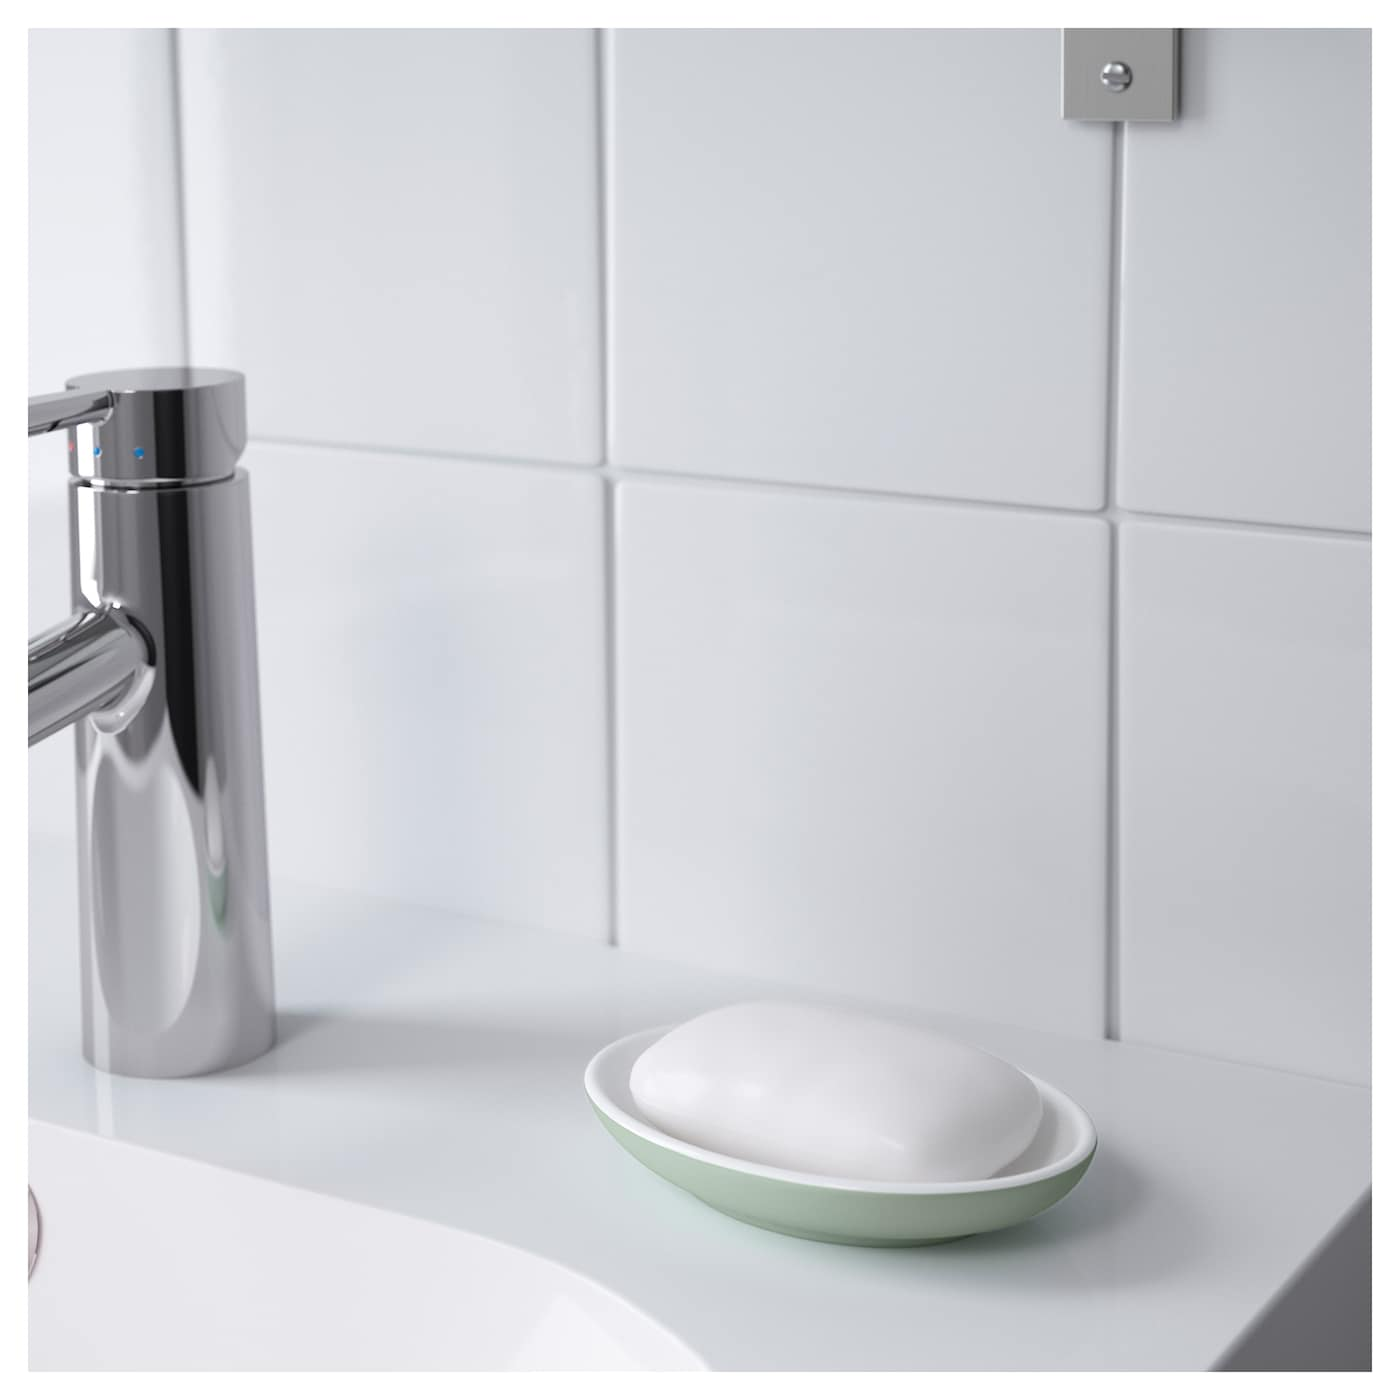 IKEA EKOLN soap dish Easy to keep clean by just wiping with a damp cloth.